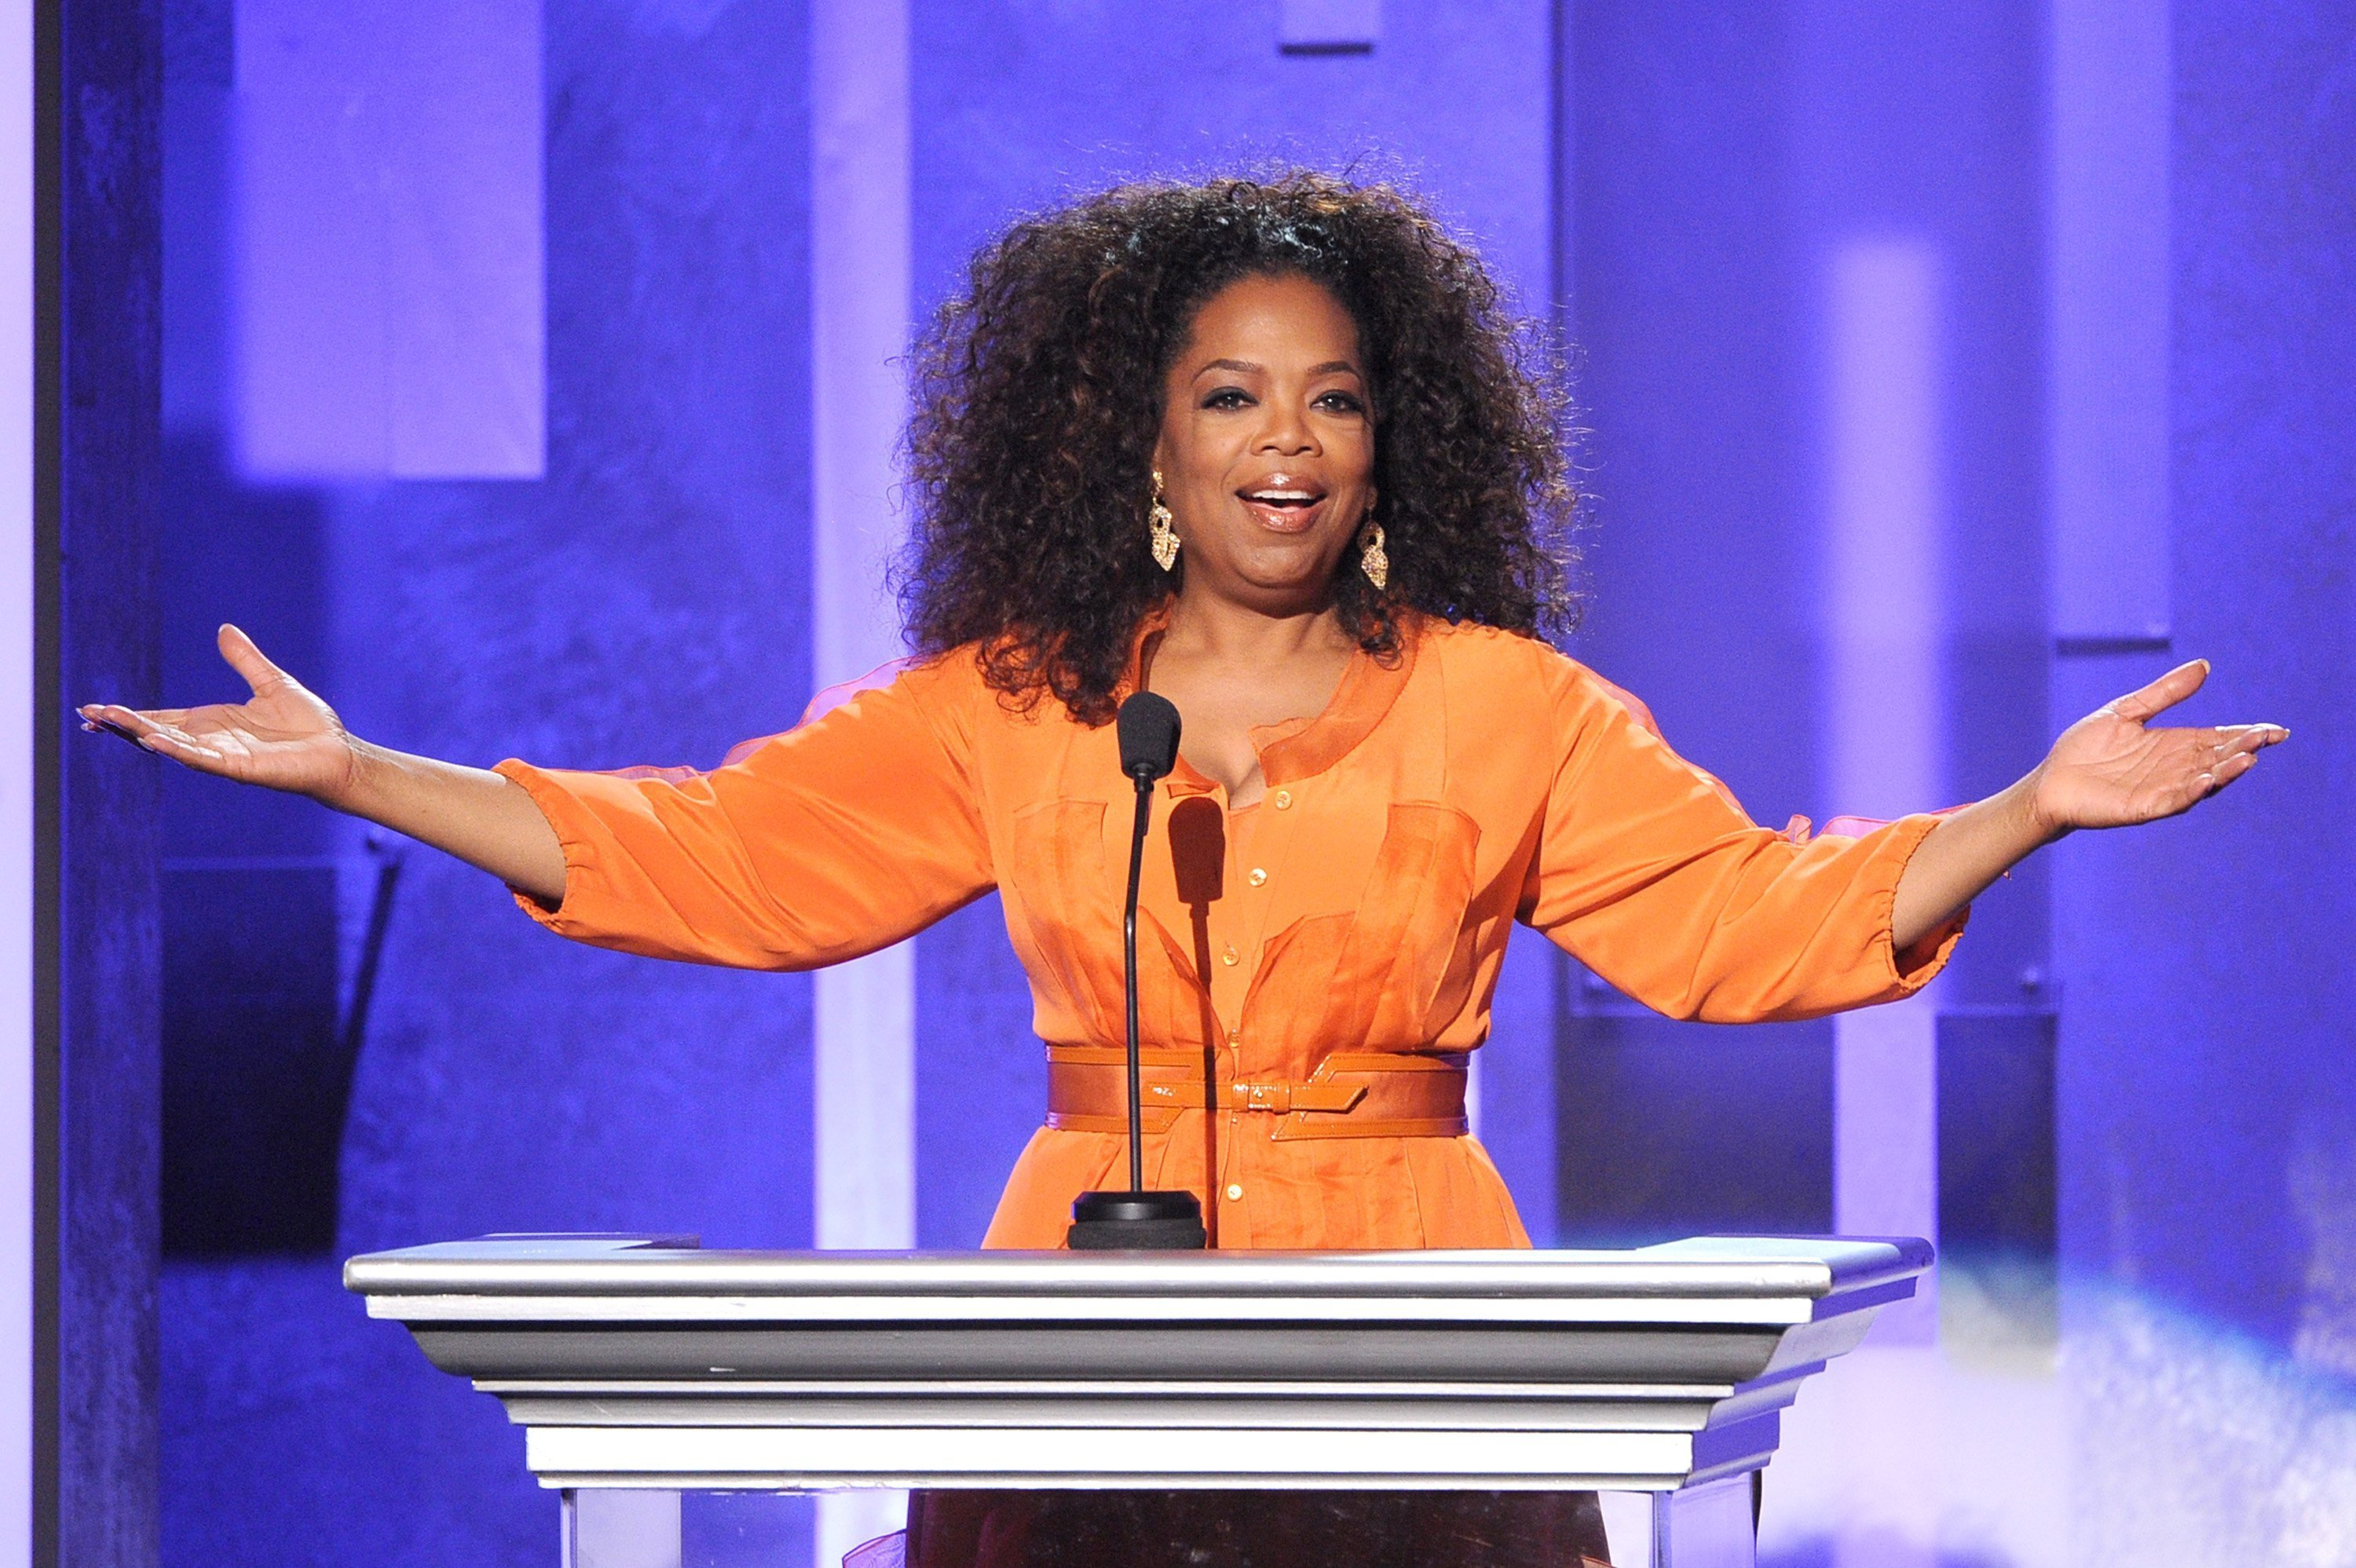 Oprah Winfrey speaks onstage during the 45th NAACP Image Awards presented by TV One at Pasadena Civic Auditorium on February 22, 2014. | Source: Getty Images